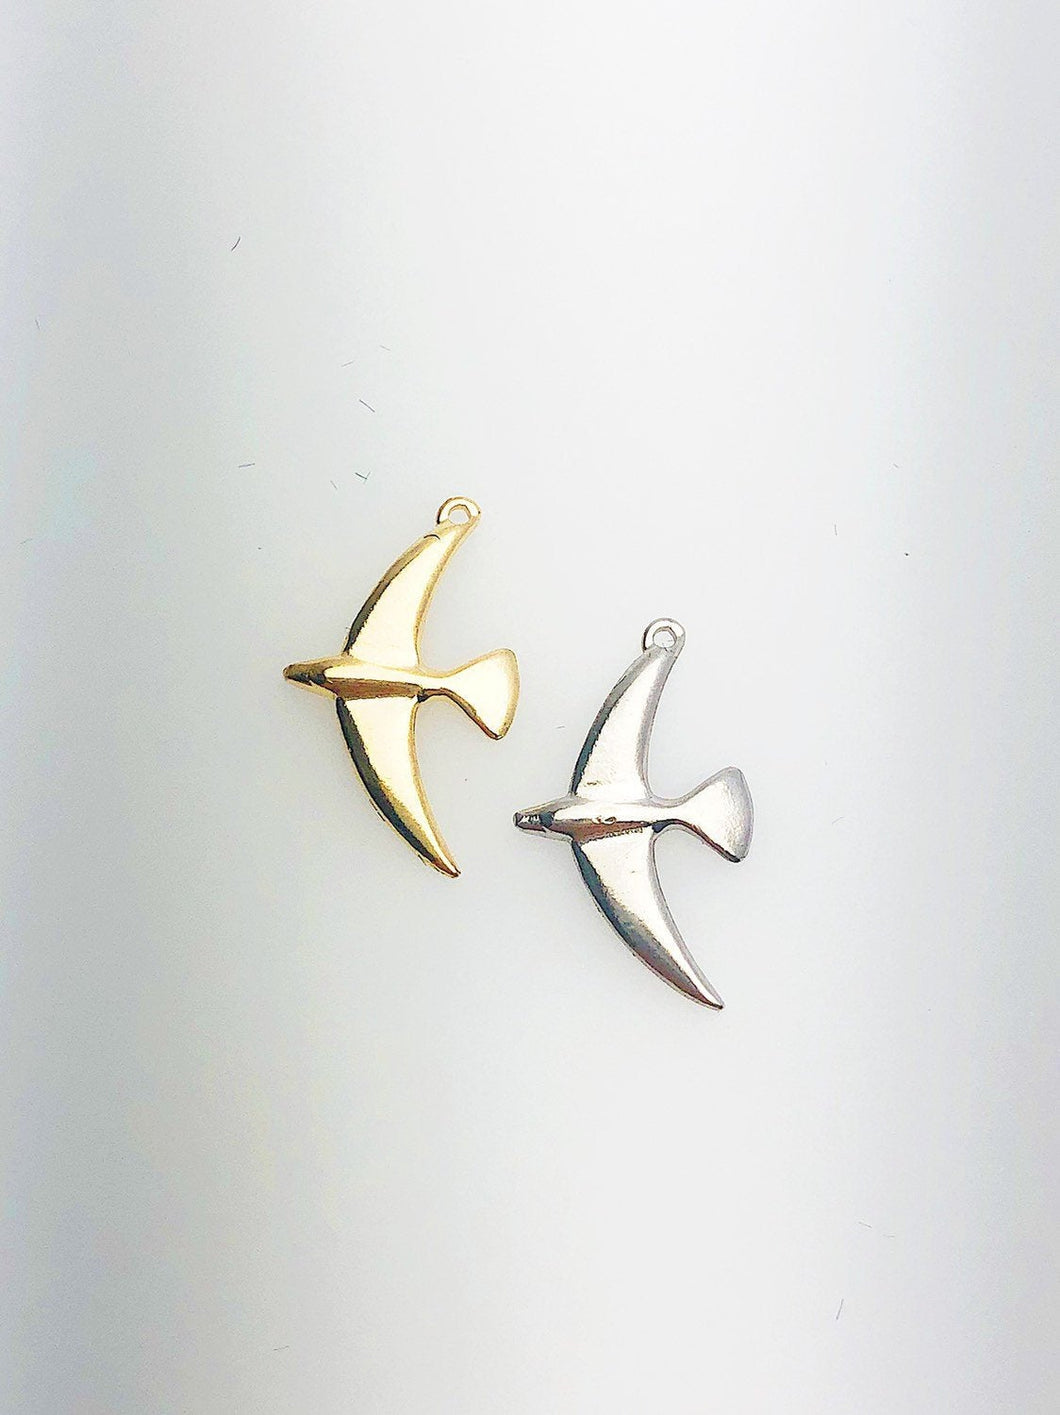 14K Solid Gold Bird Charm w/ Ring, 9.0x15.7mm, Made in USA (L-10)